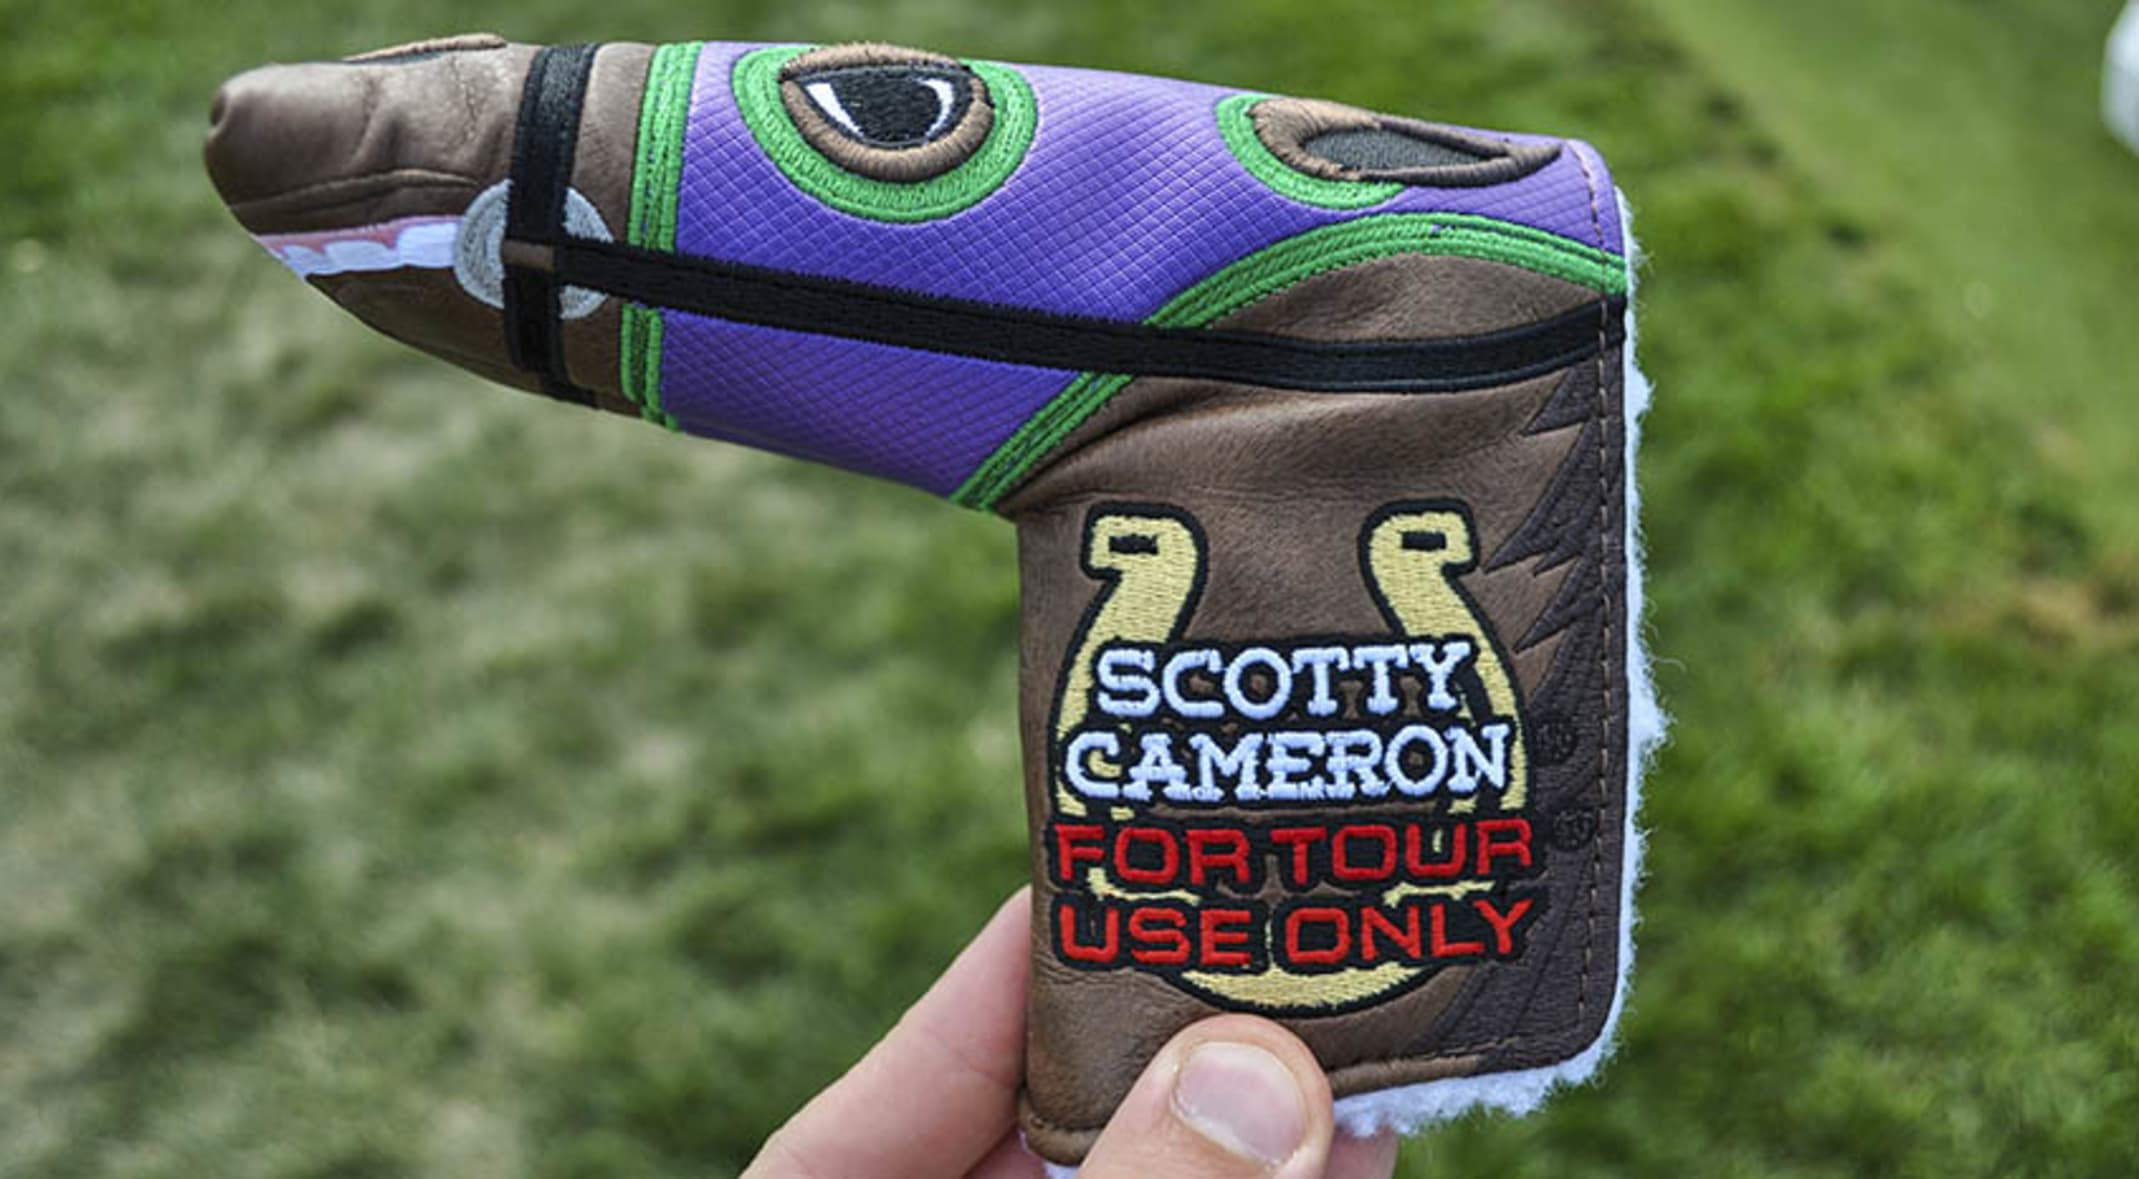 Scotty Cameron's Kentucky-inspired headcover